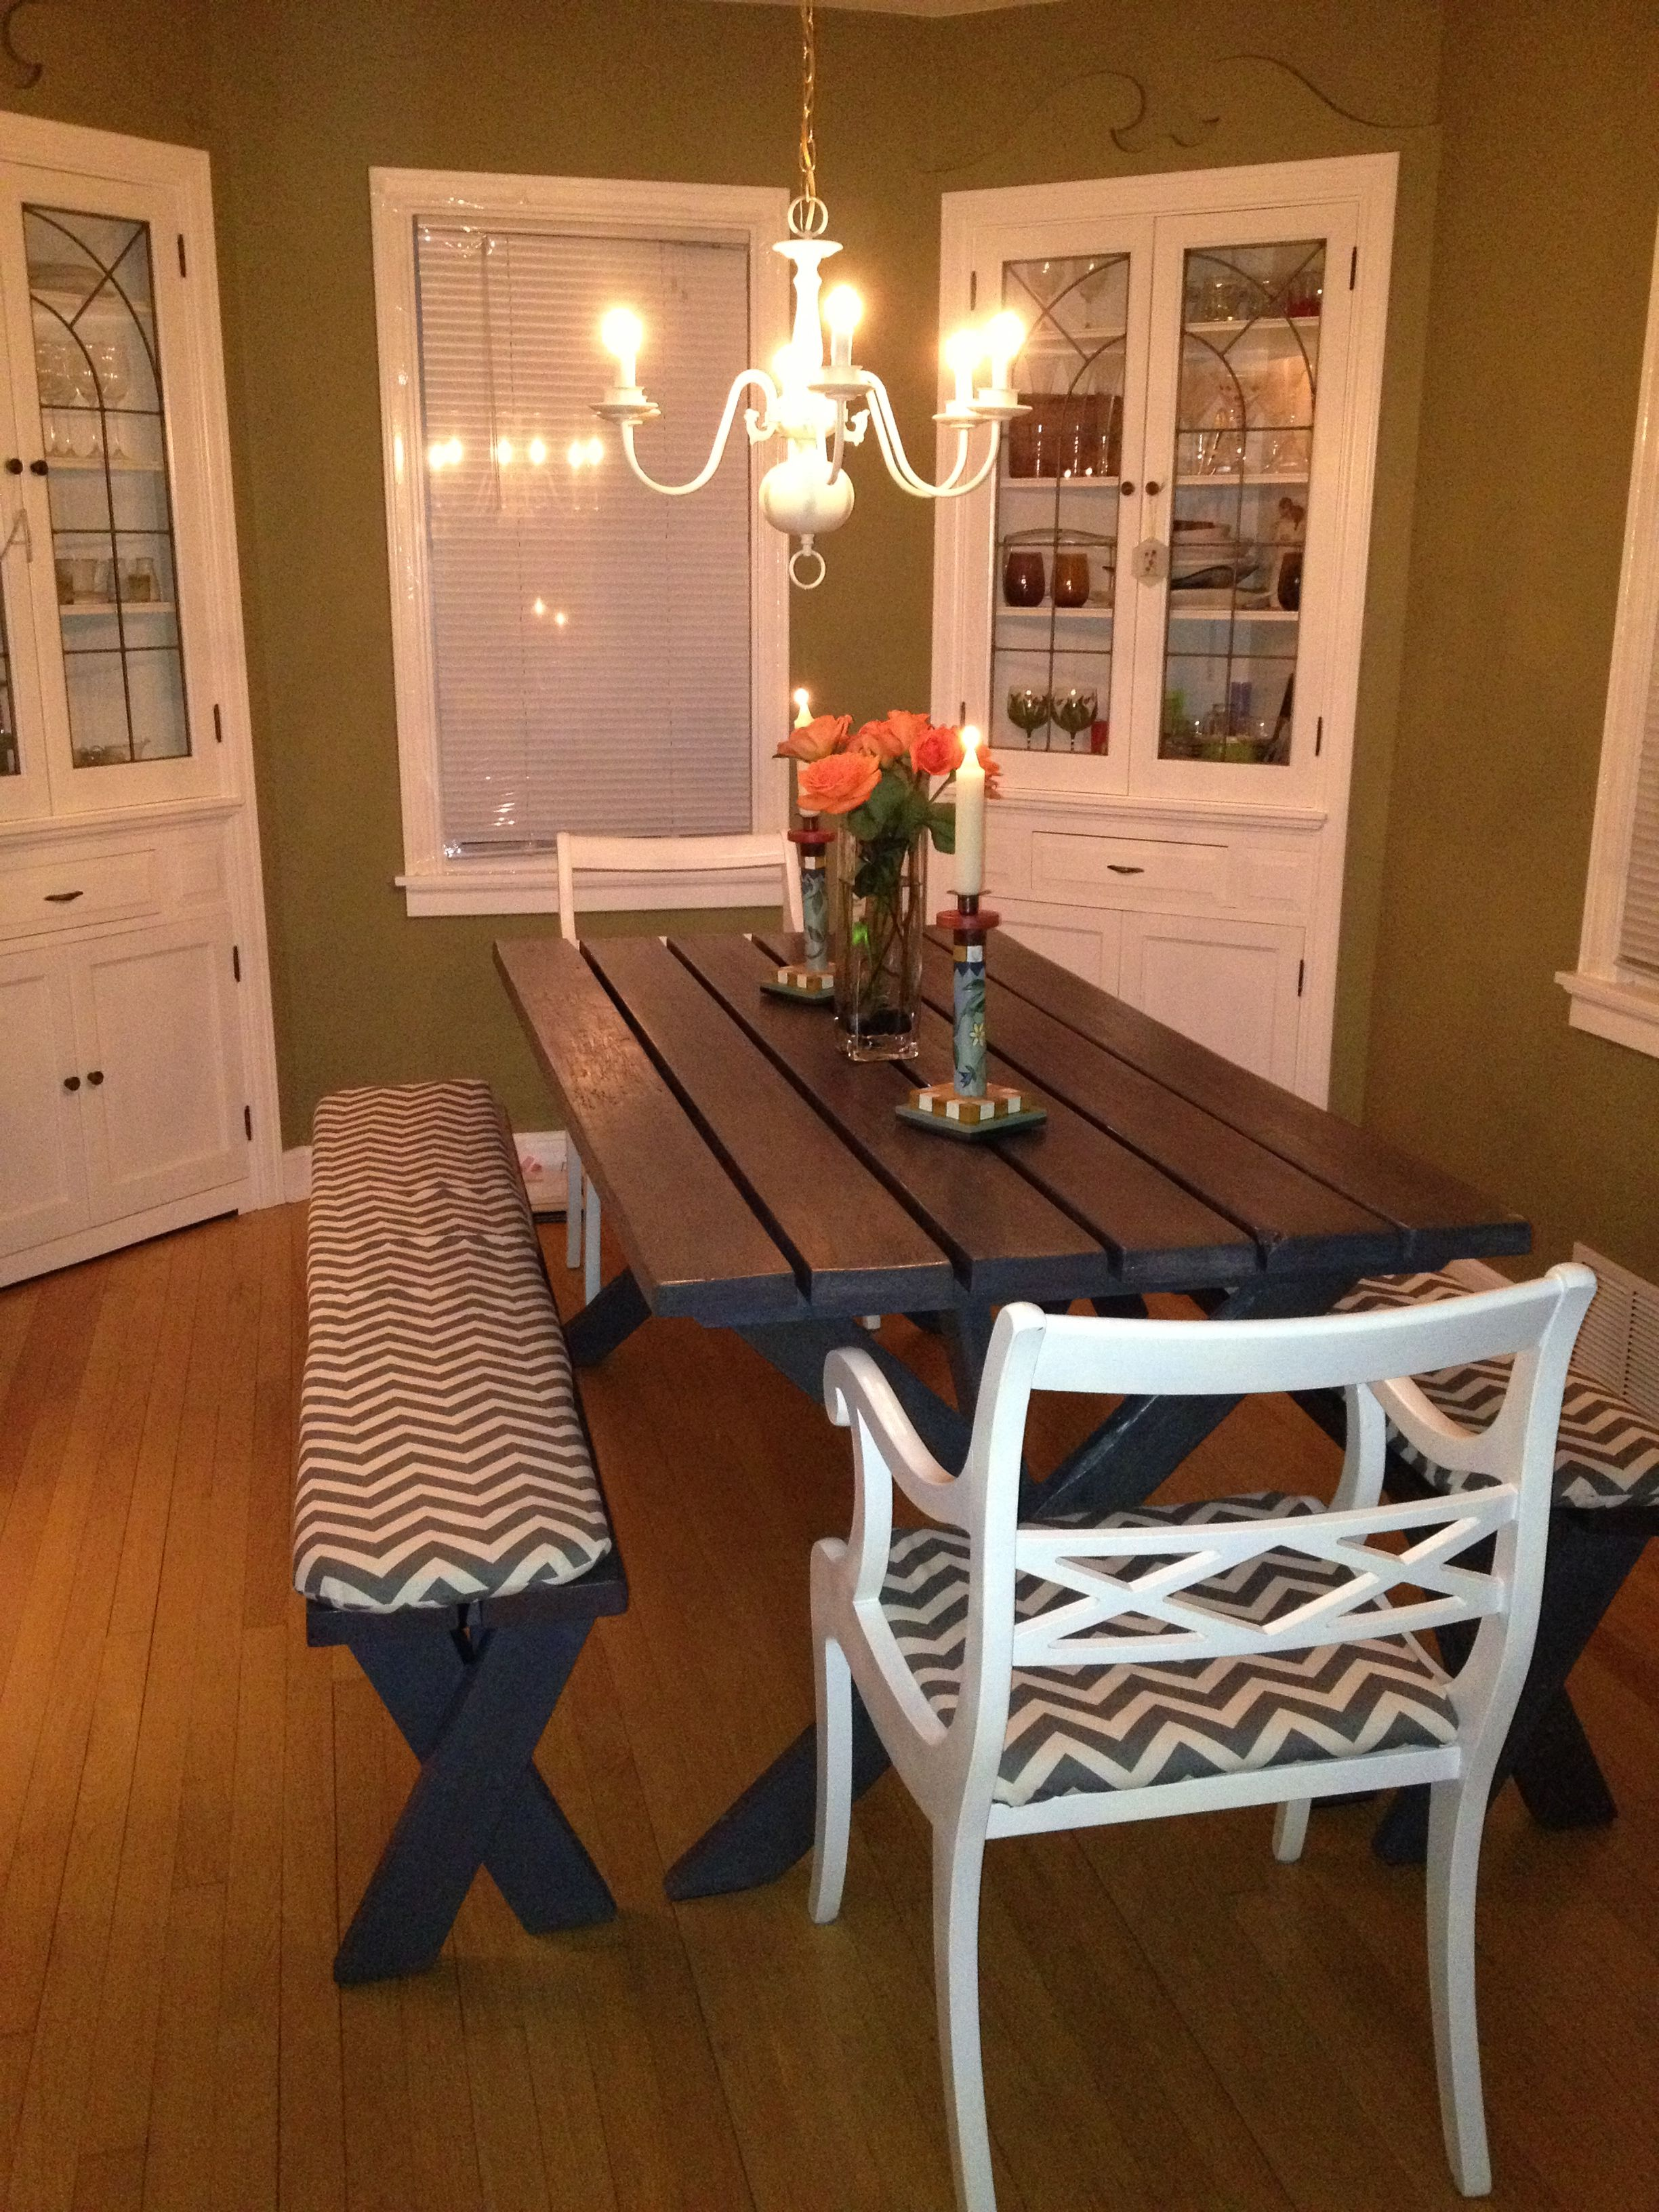 Picnic table as dining room table - 17 Best Images About Diy Dining Room On Pinterest Old Kitchen Tables How To Paint And Wood Dining Room Tables